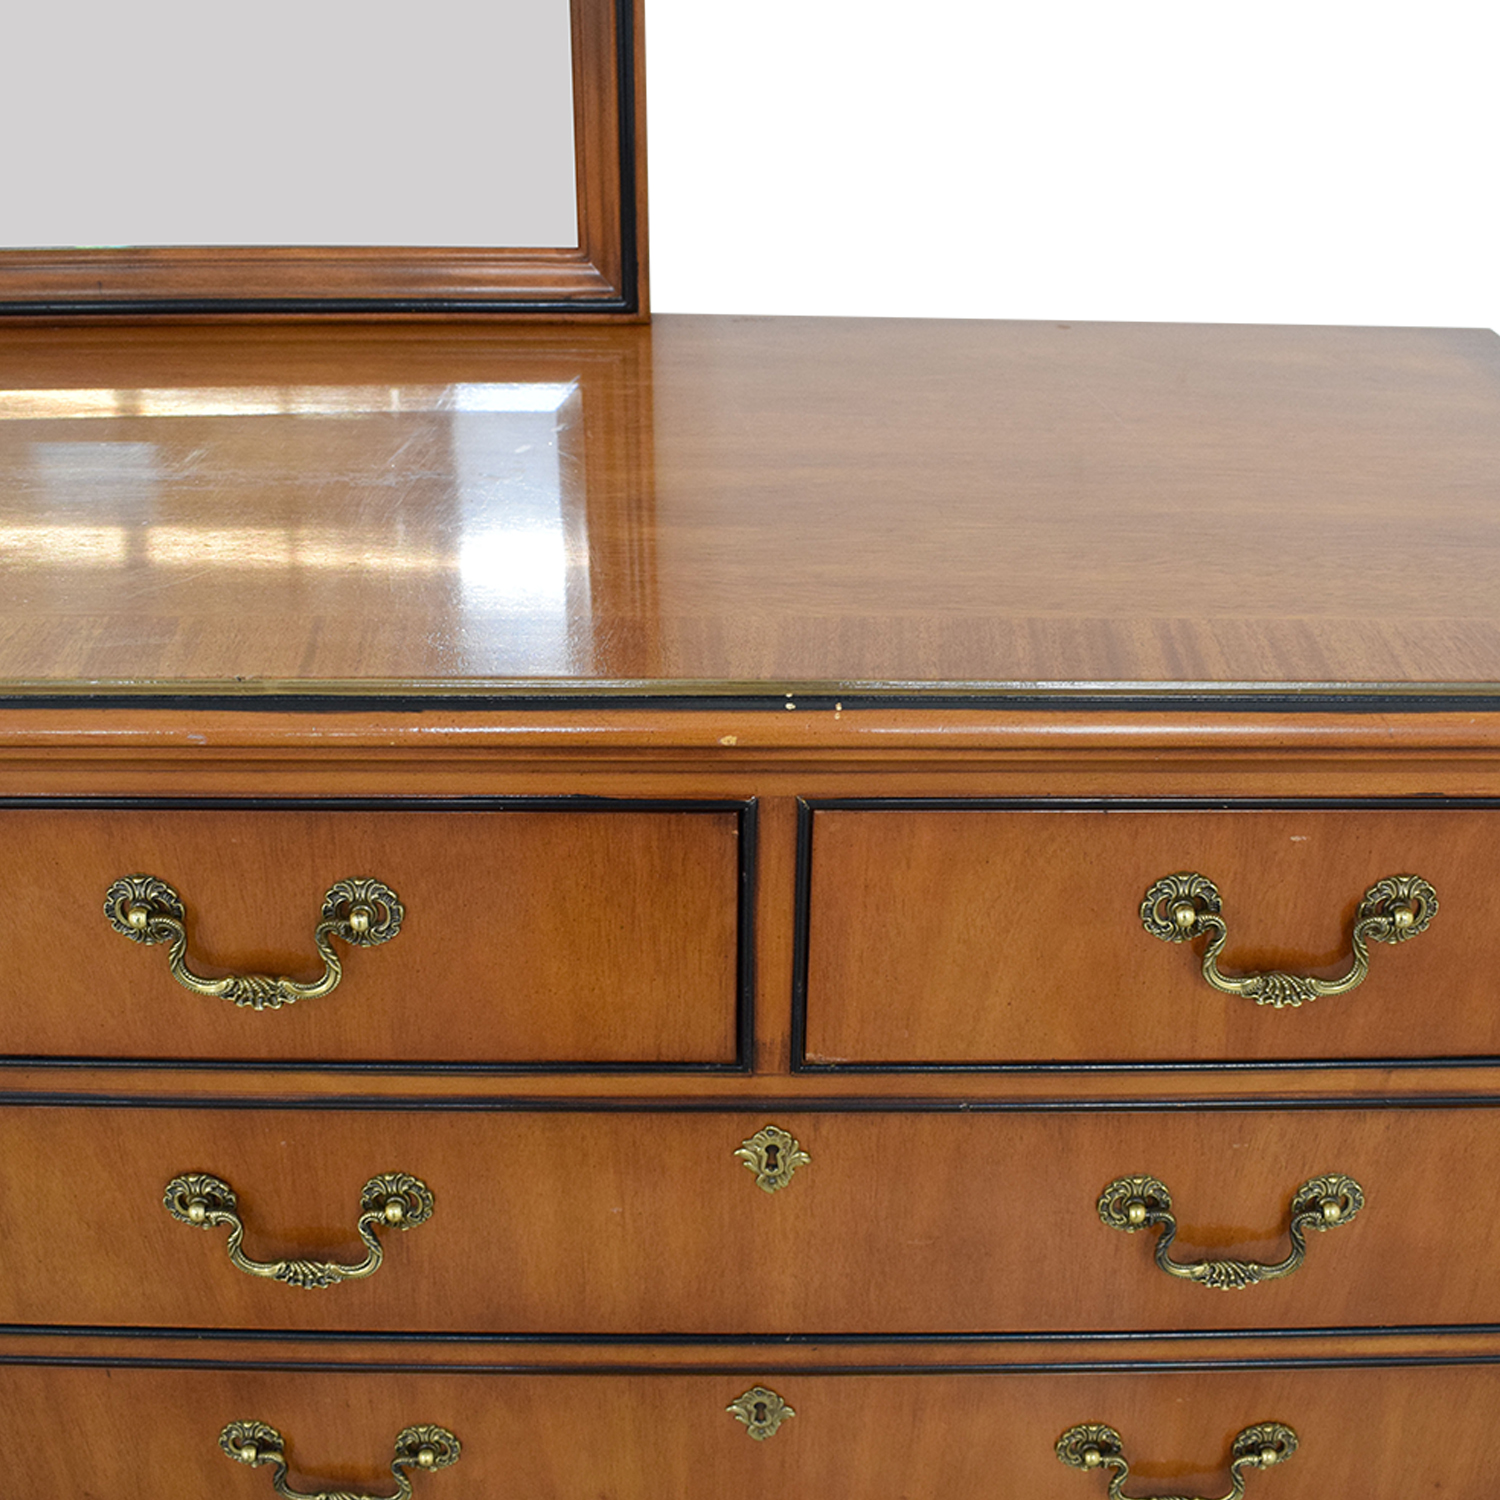 Drexel Drexel Dresser with Mirror used